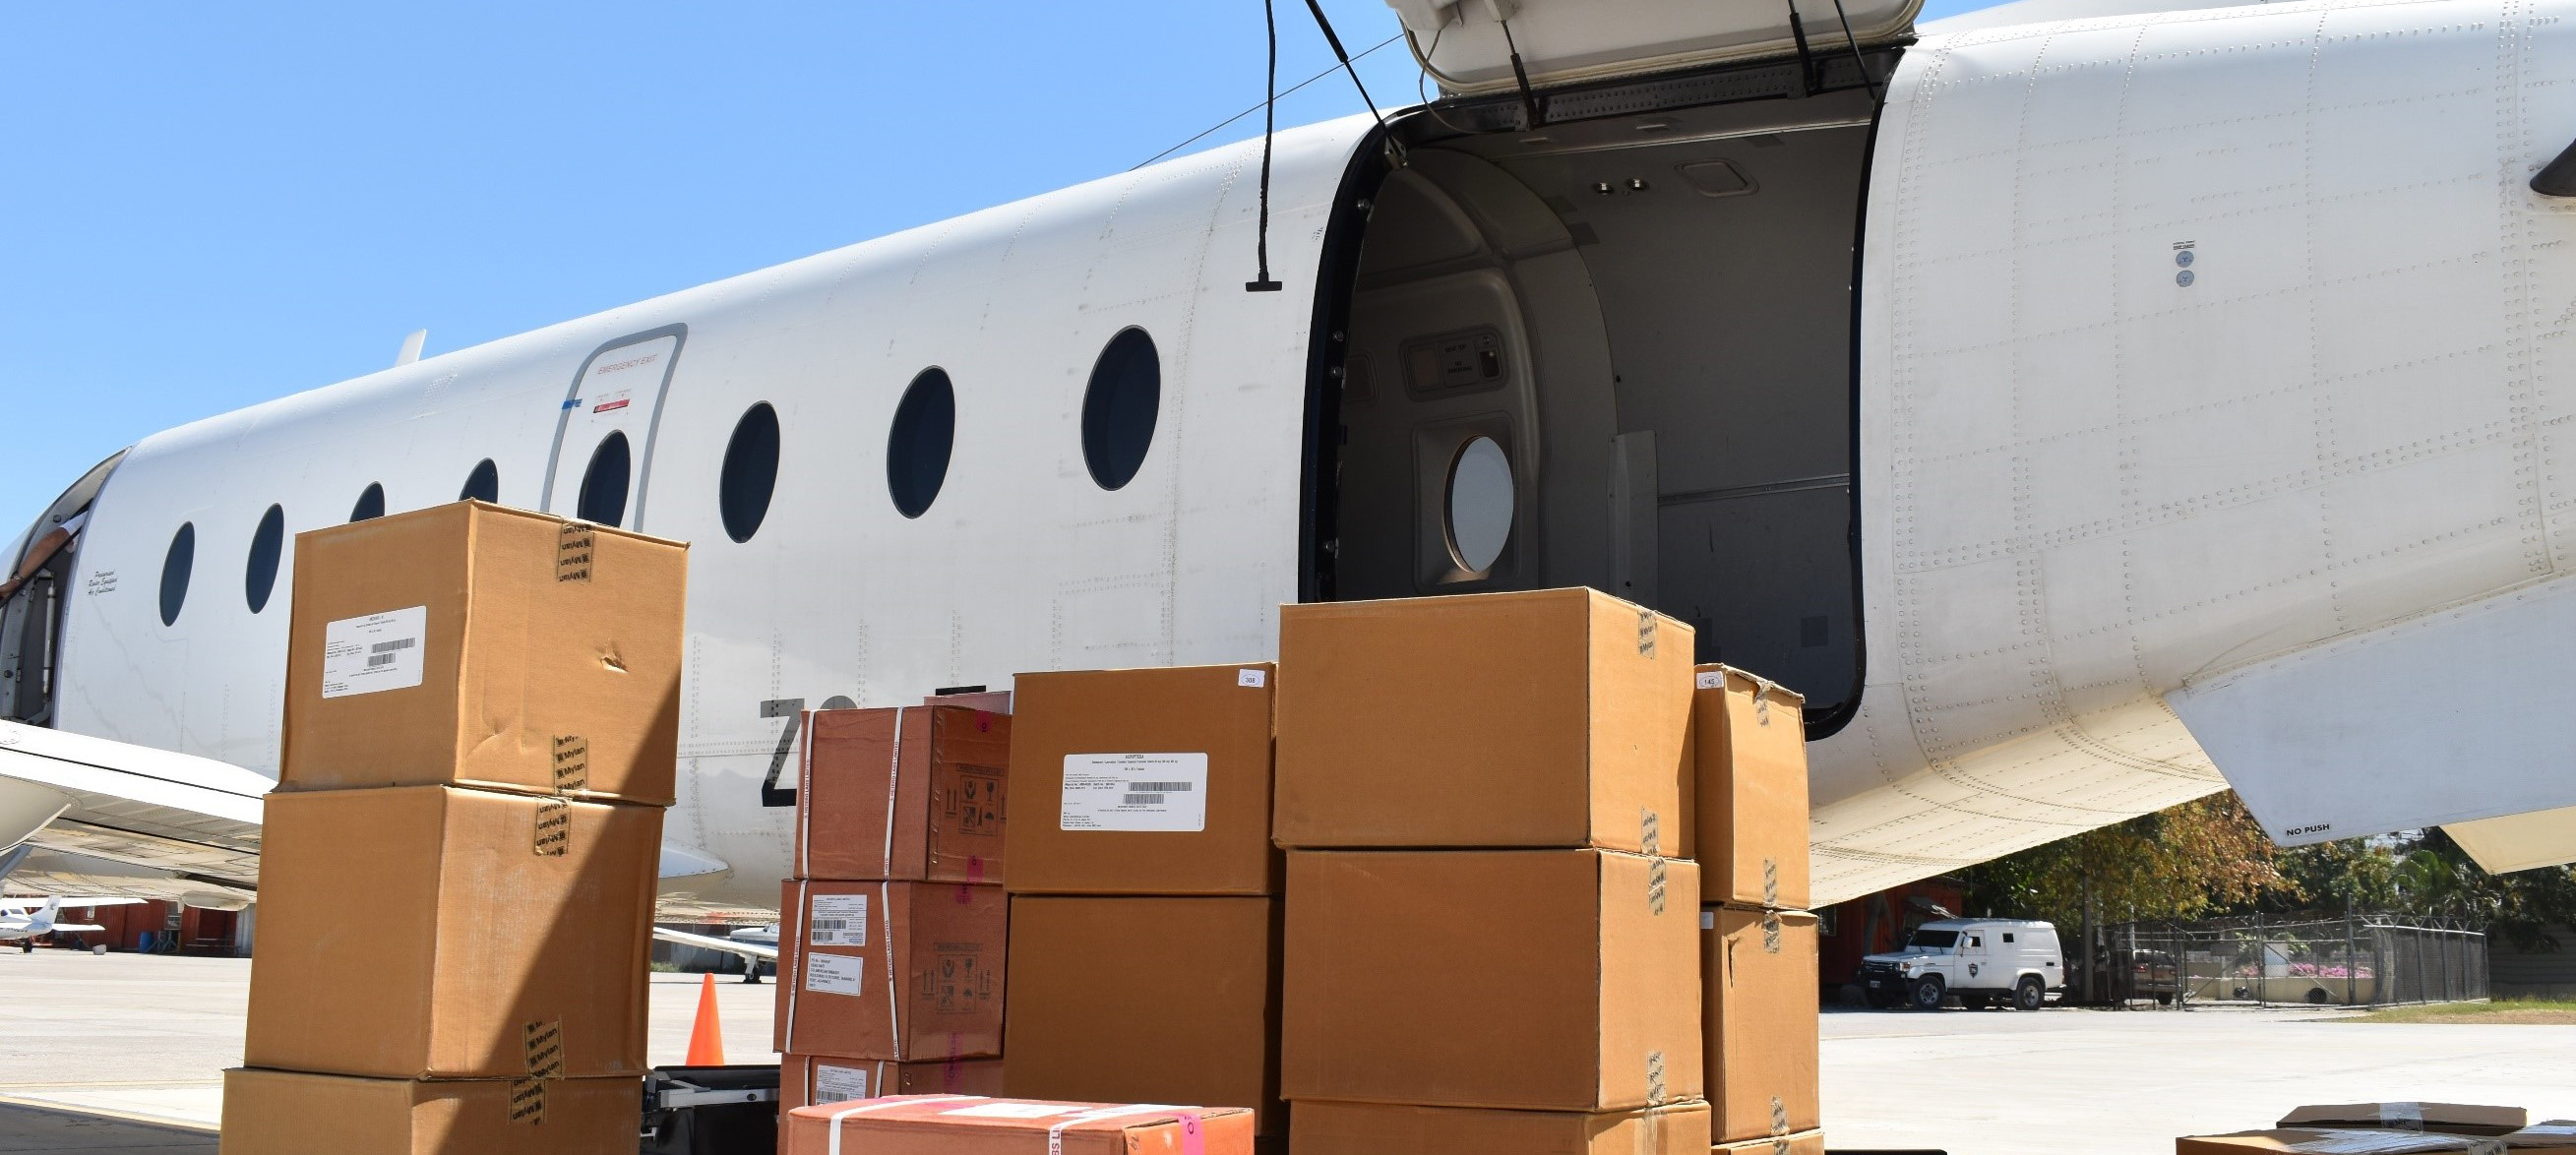 boxes sit in front of airplane for loading